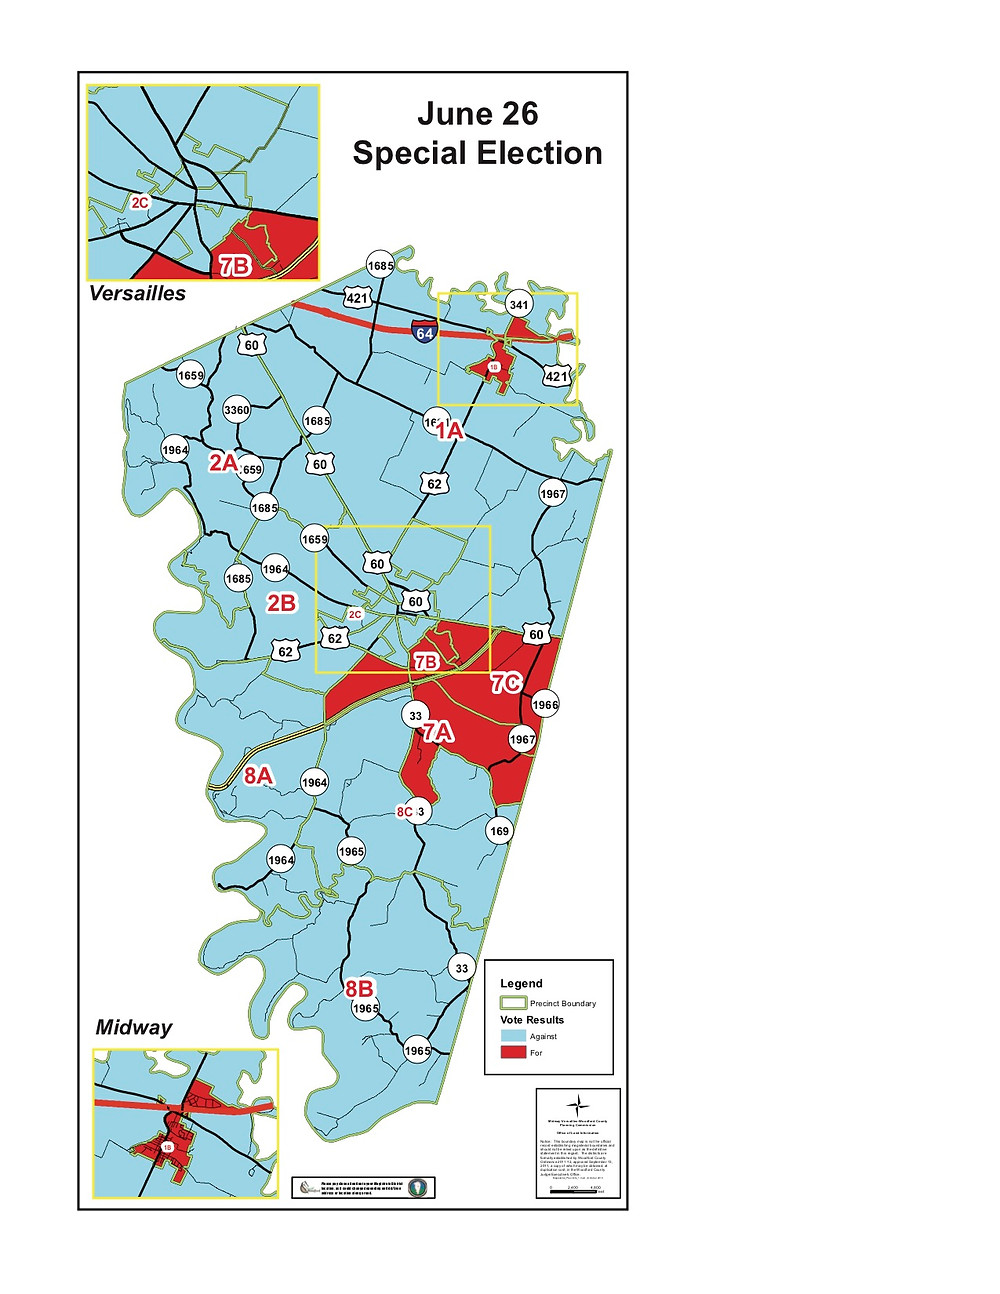 """THIRTEEN OF Woodford County's 19 precincts were carried by """"Against"""" voters in the June 26 special election that decided the fate of a 5.5 cents property tax hike to pay for a new high school and other facility needs. The two best-performing """"For"""" precincts, Huntertown Elementary (7B) and Southside Elementary (7C), were inside schools, while the Millville (2A) and Nonesuch (8B) firehouses went strongly """"Against."""" (Graphic prepared by Woodford County GIS Coordinator Kenneth Johns)"""